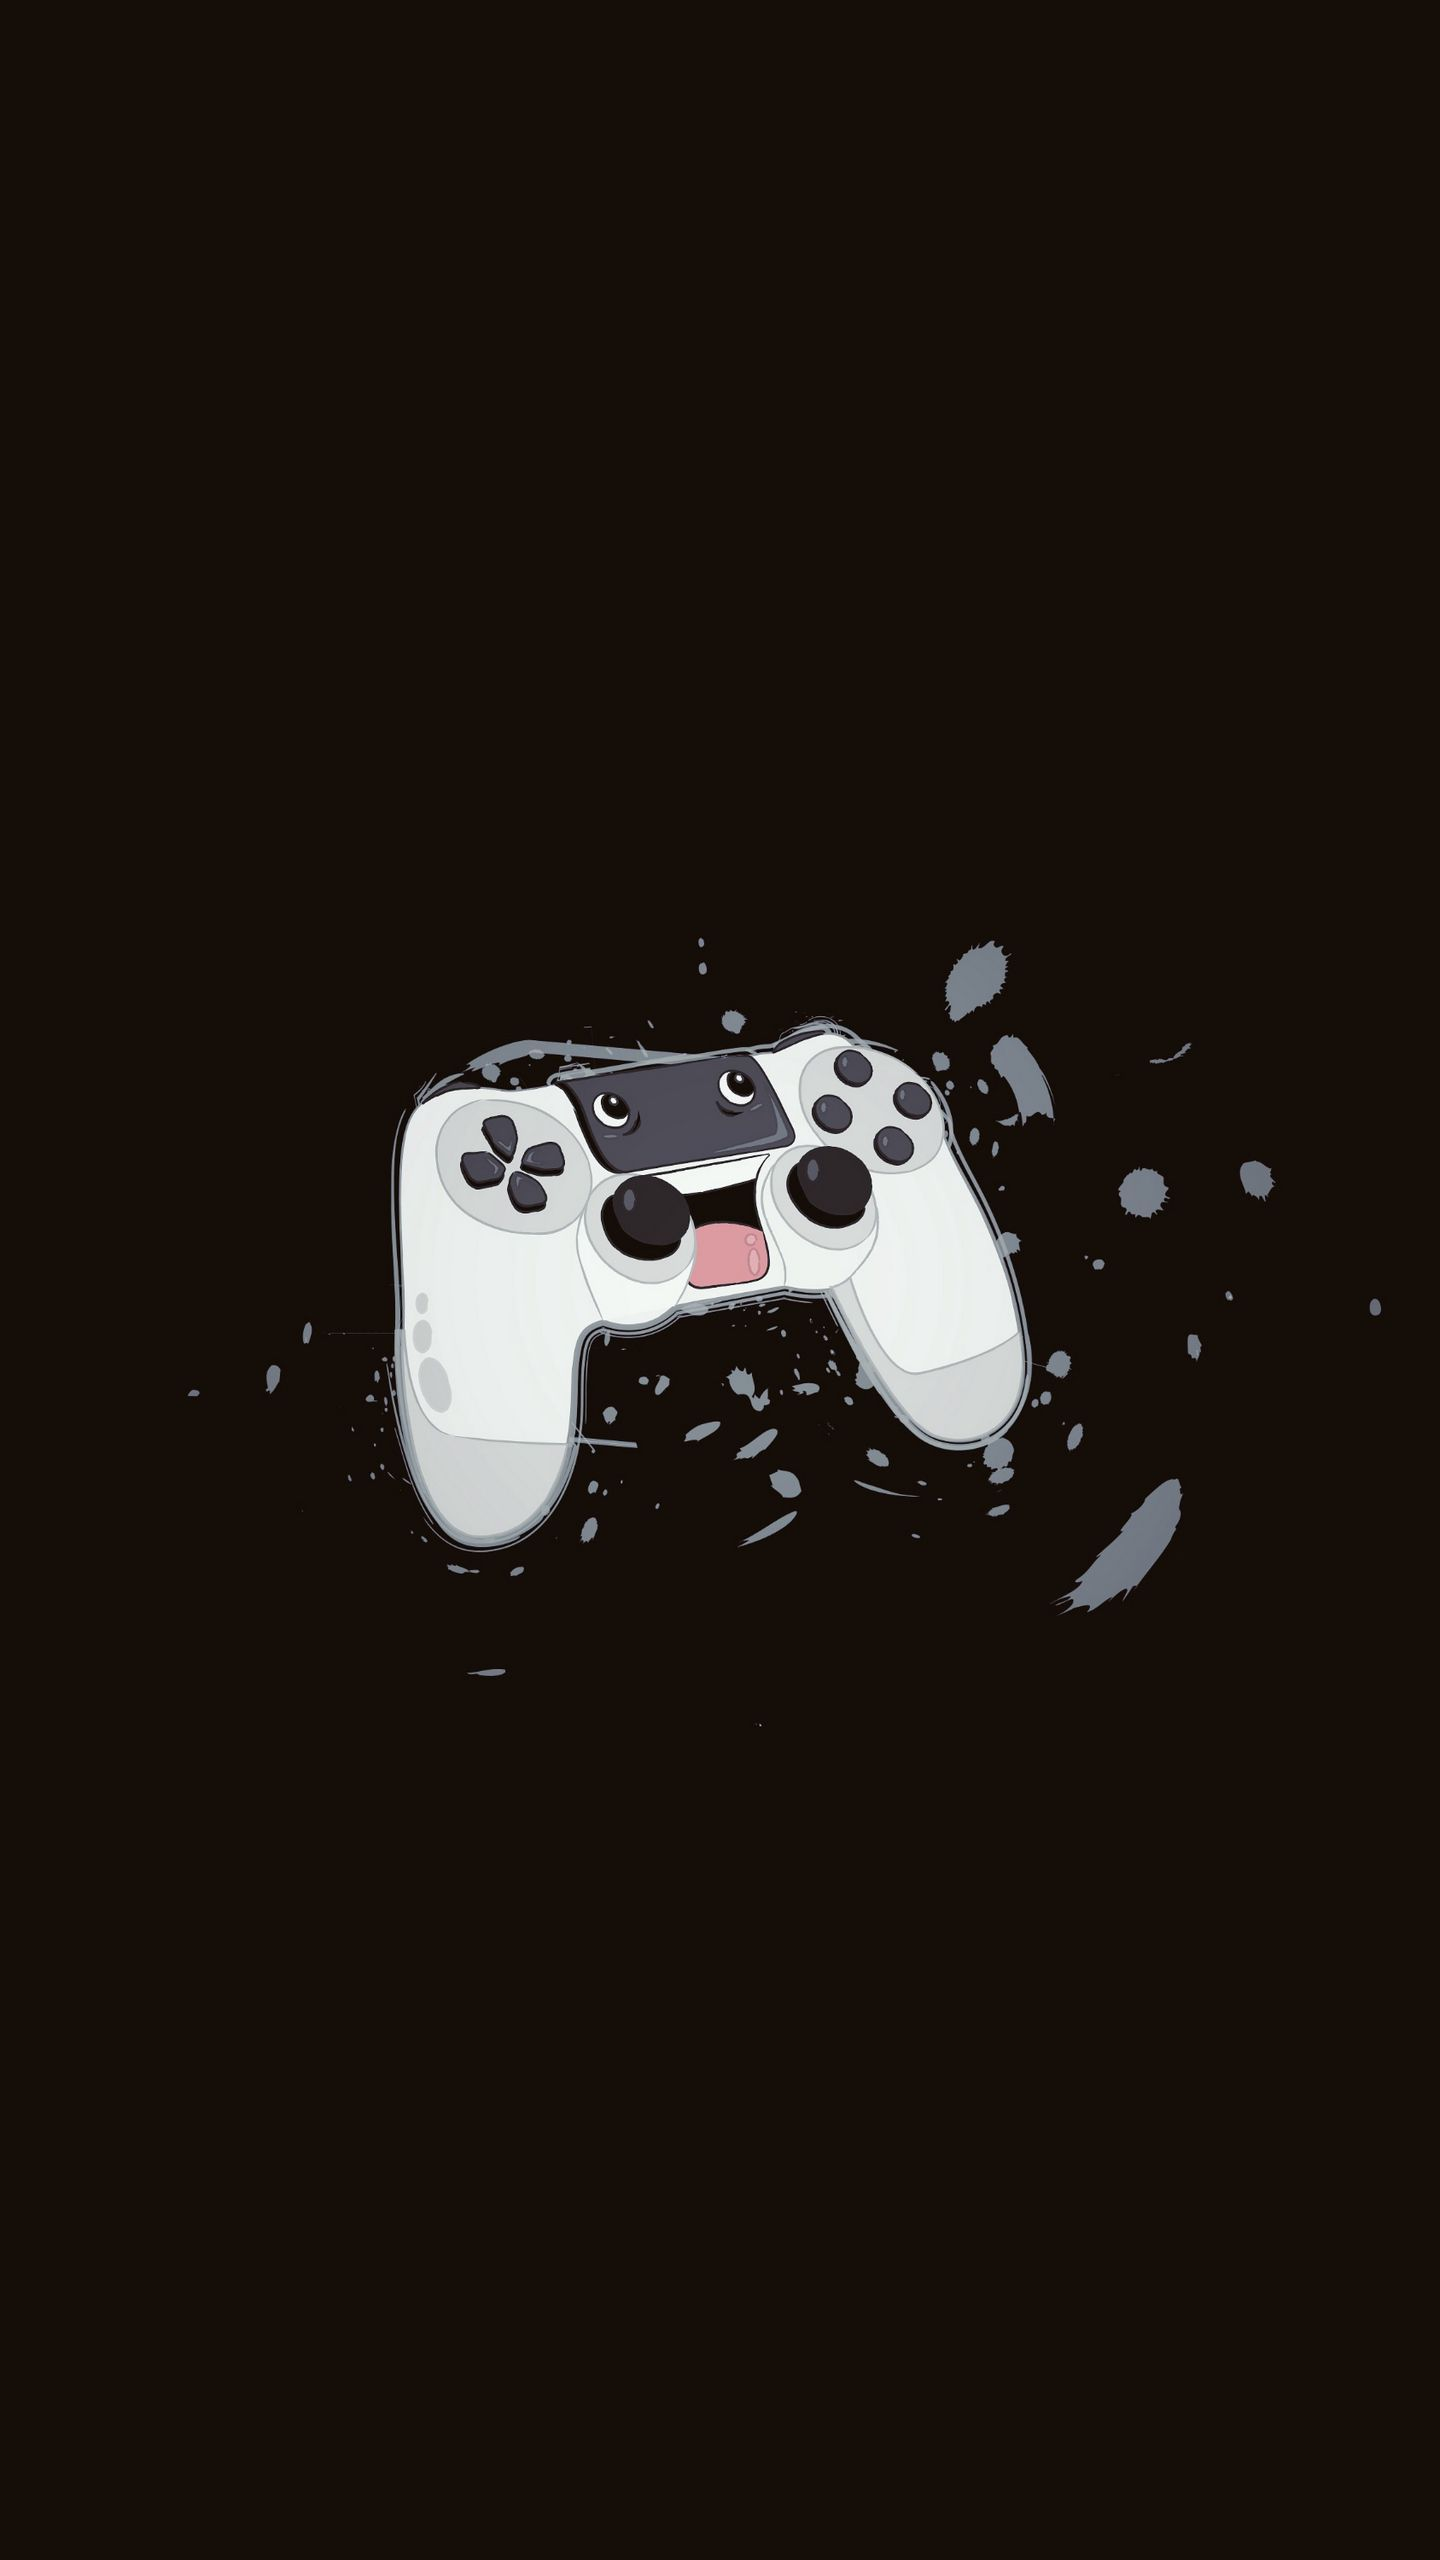 Gaming wallpapers, Backgrounds phone ...